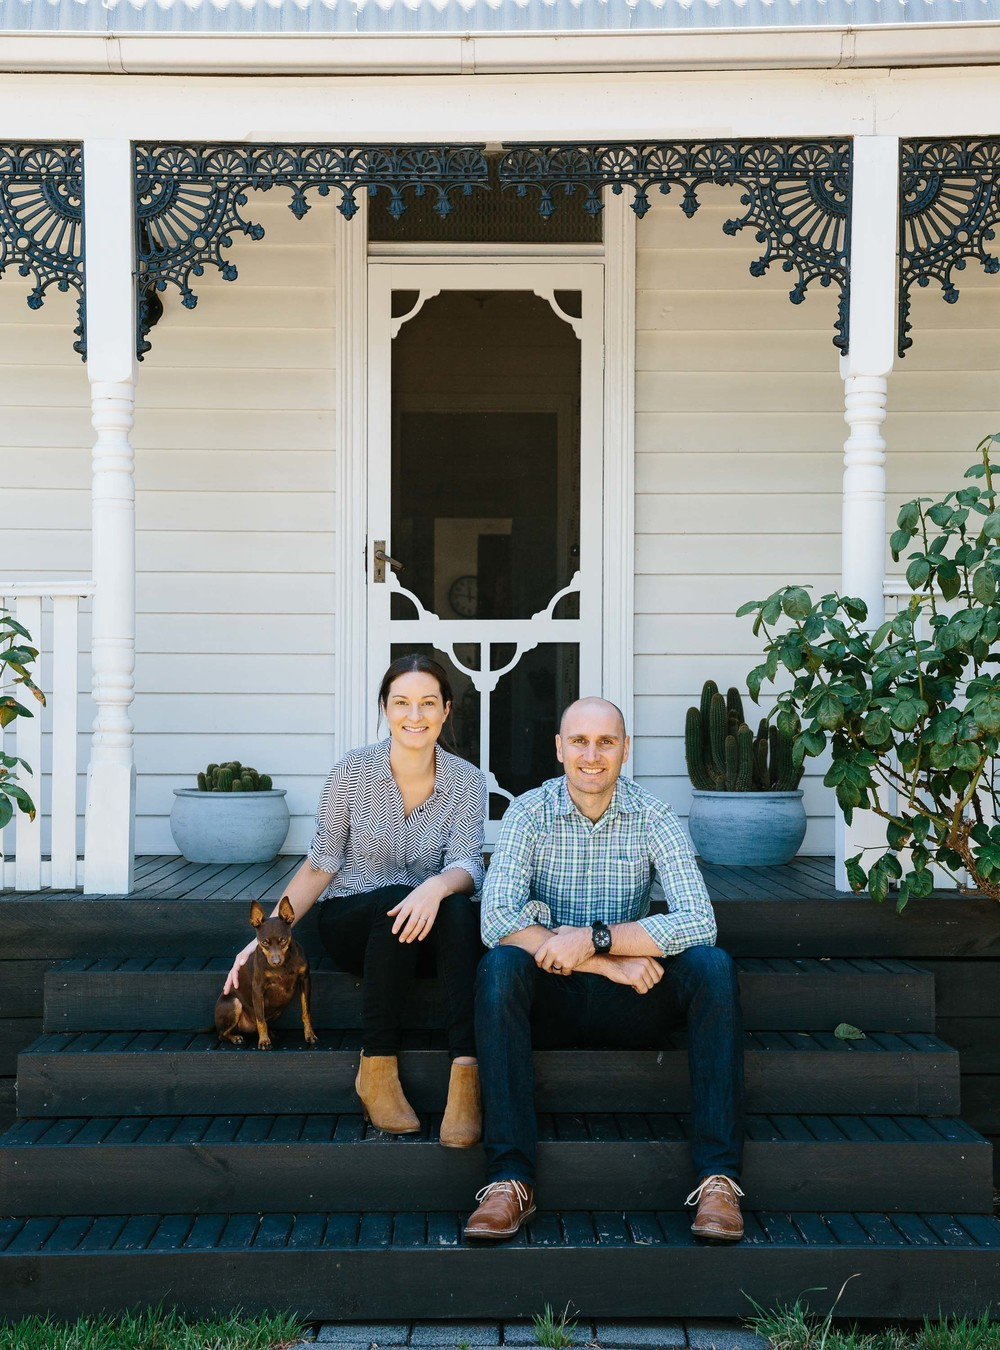 Marnie Hawson, Melbourne interior photographer for Country Style magazine